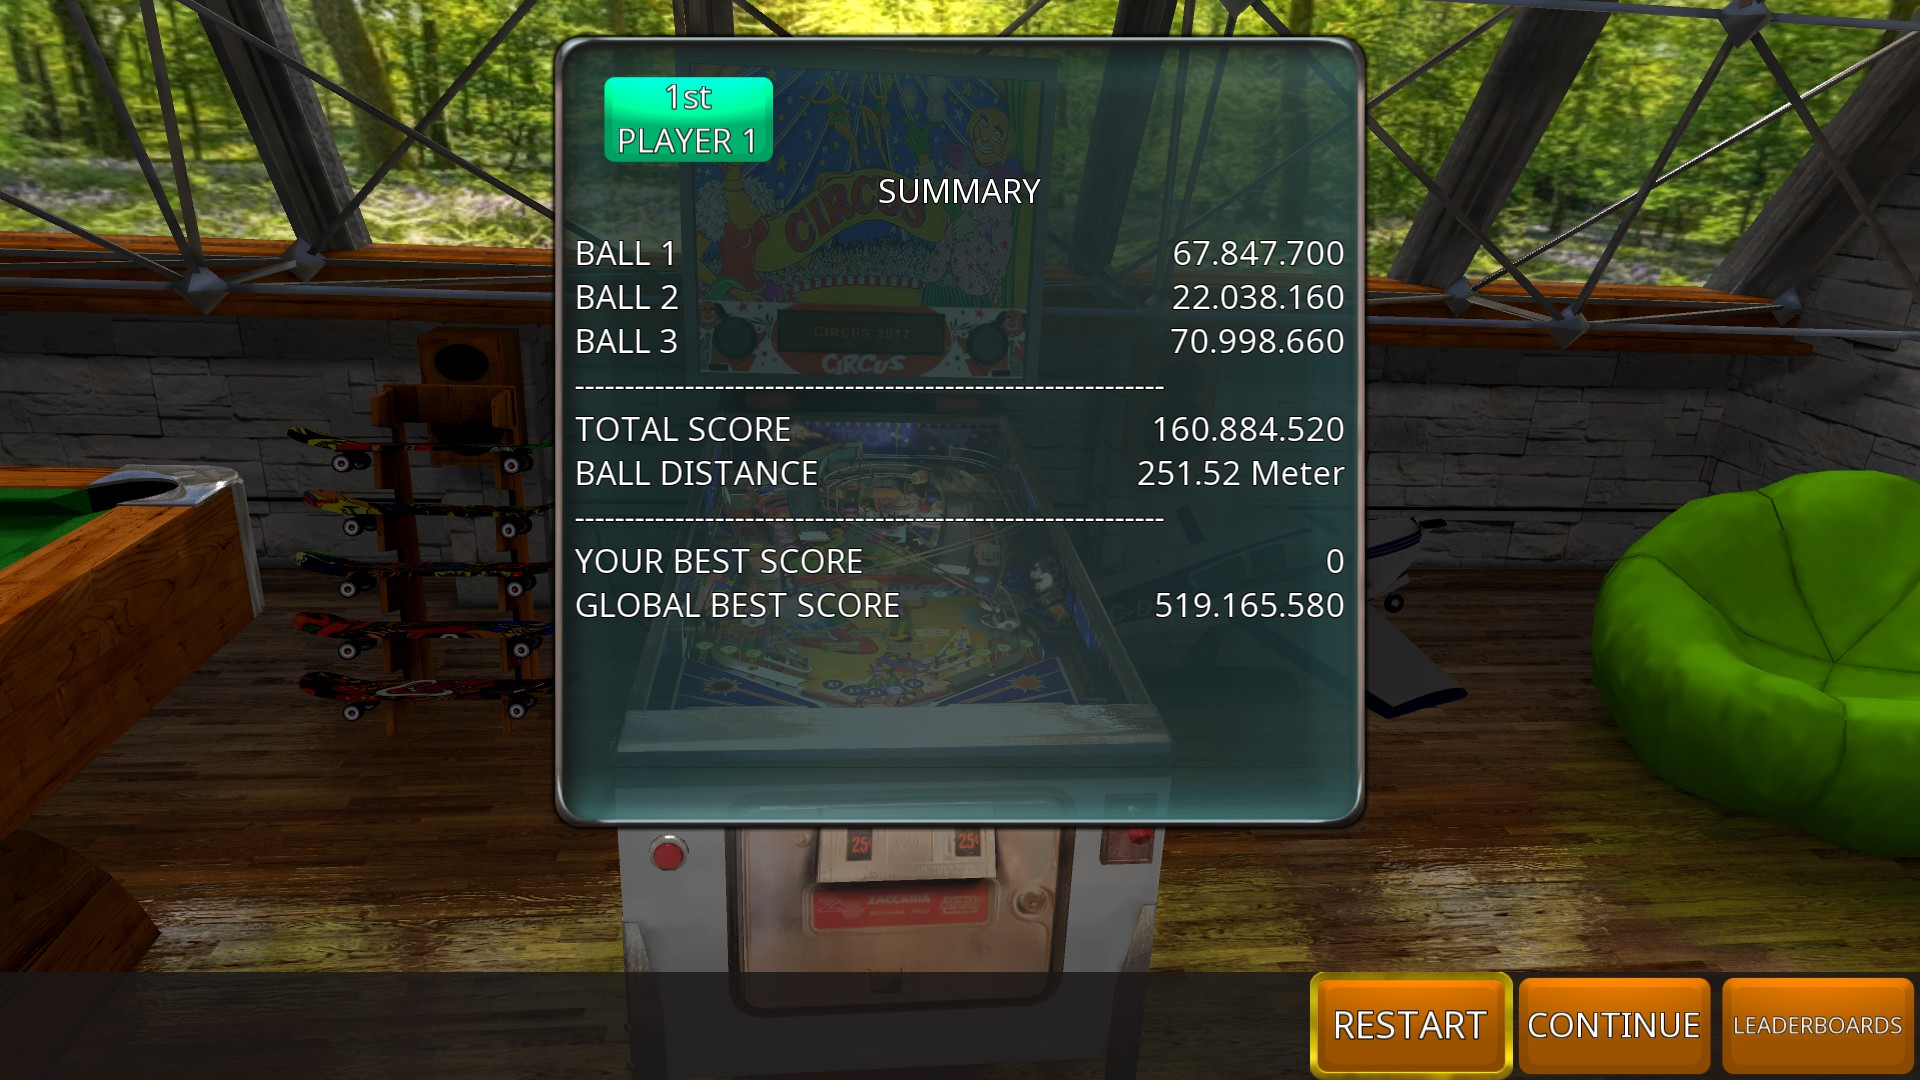 GTibel: Zaccaria Pinball: Circus 2017 [3 balls] (PC) 160,884,520 points on 2018-08-29 09:50:09